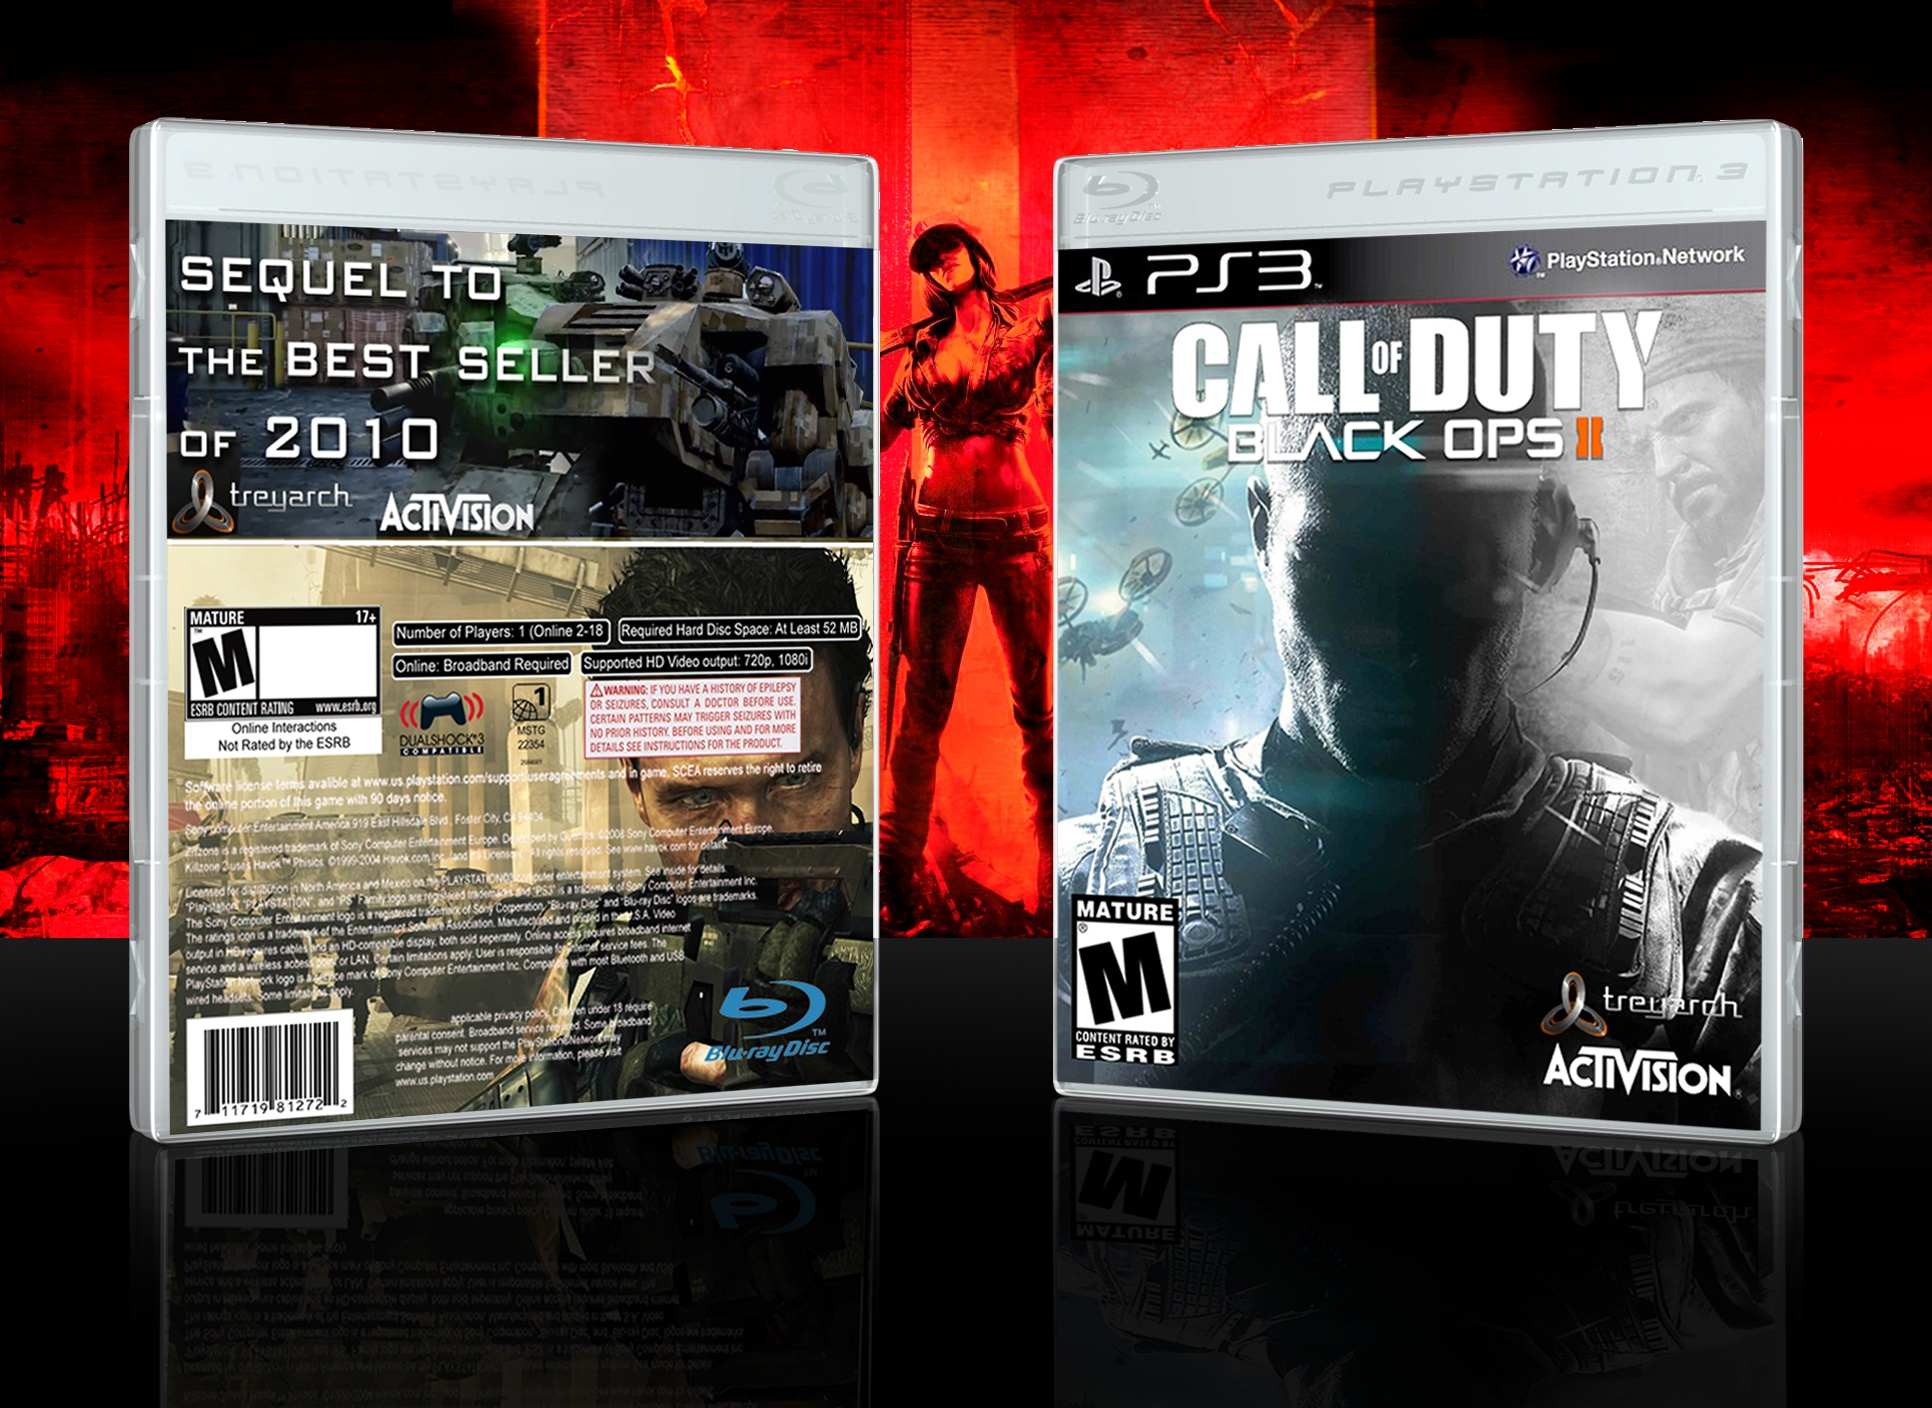 Call of Duty: Black Ops II box cover